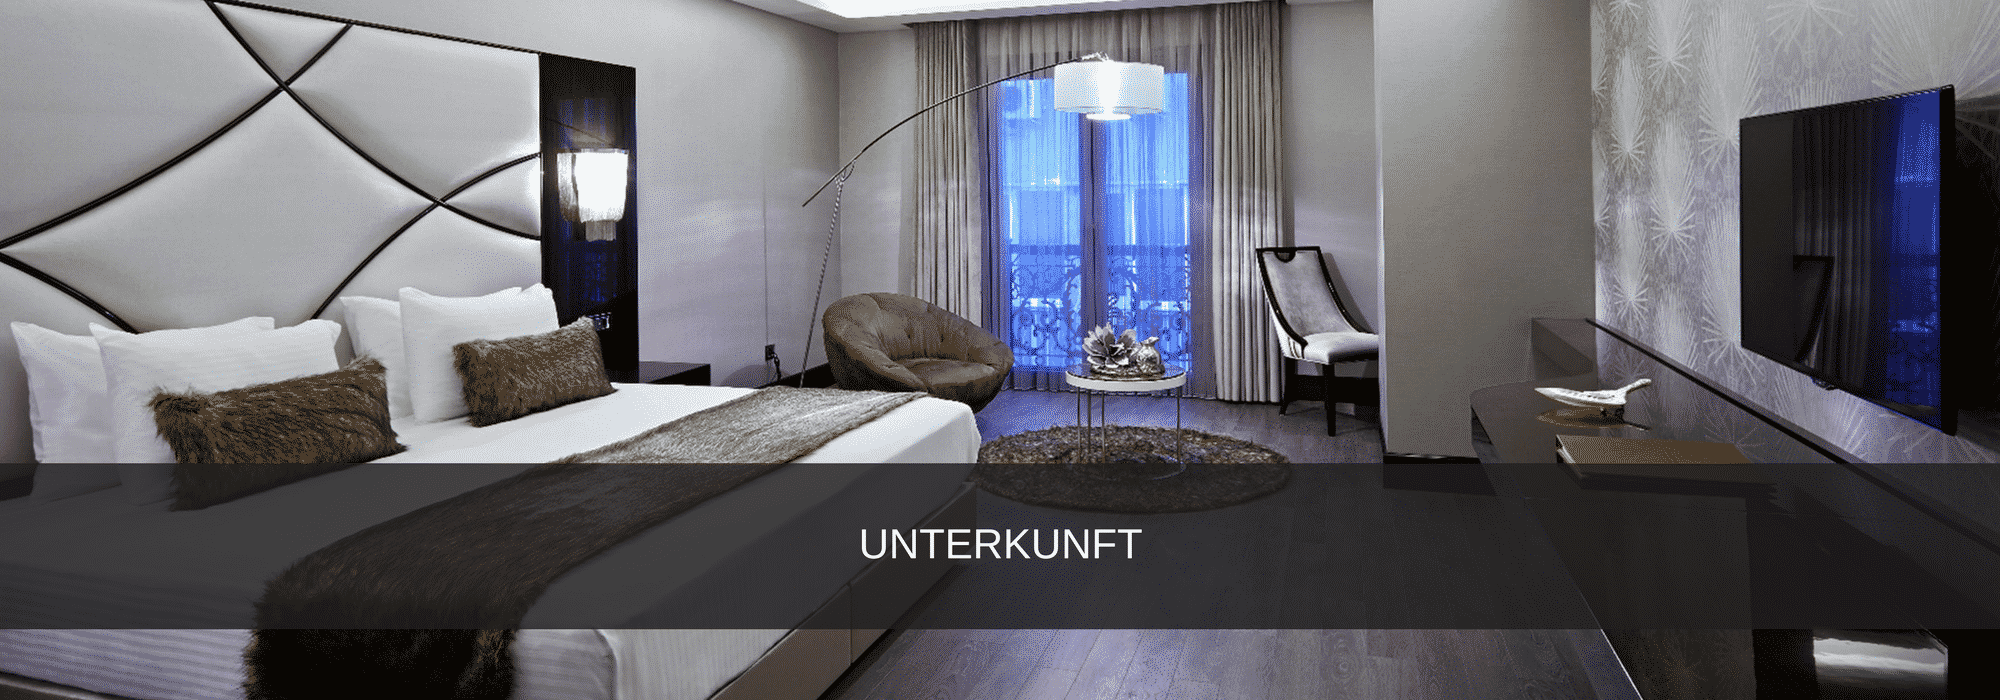 Unterkunft - Global Medical Care®